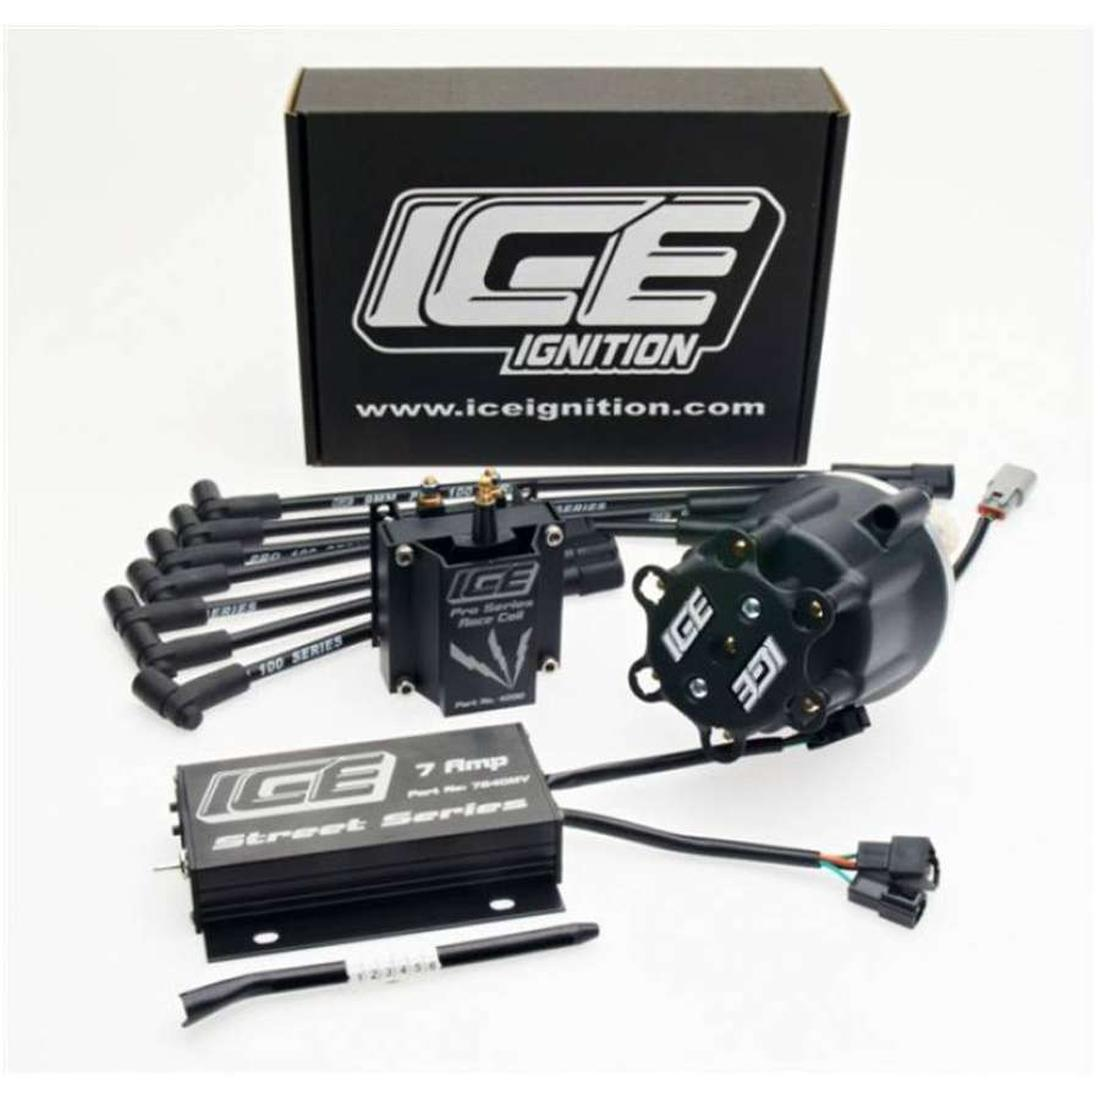 Ice Ignition 7 AMP Digital Street Ignition Kit Chev SBC 283 350 400 V8 Engine image